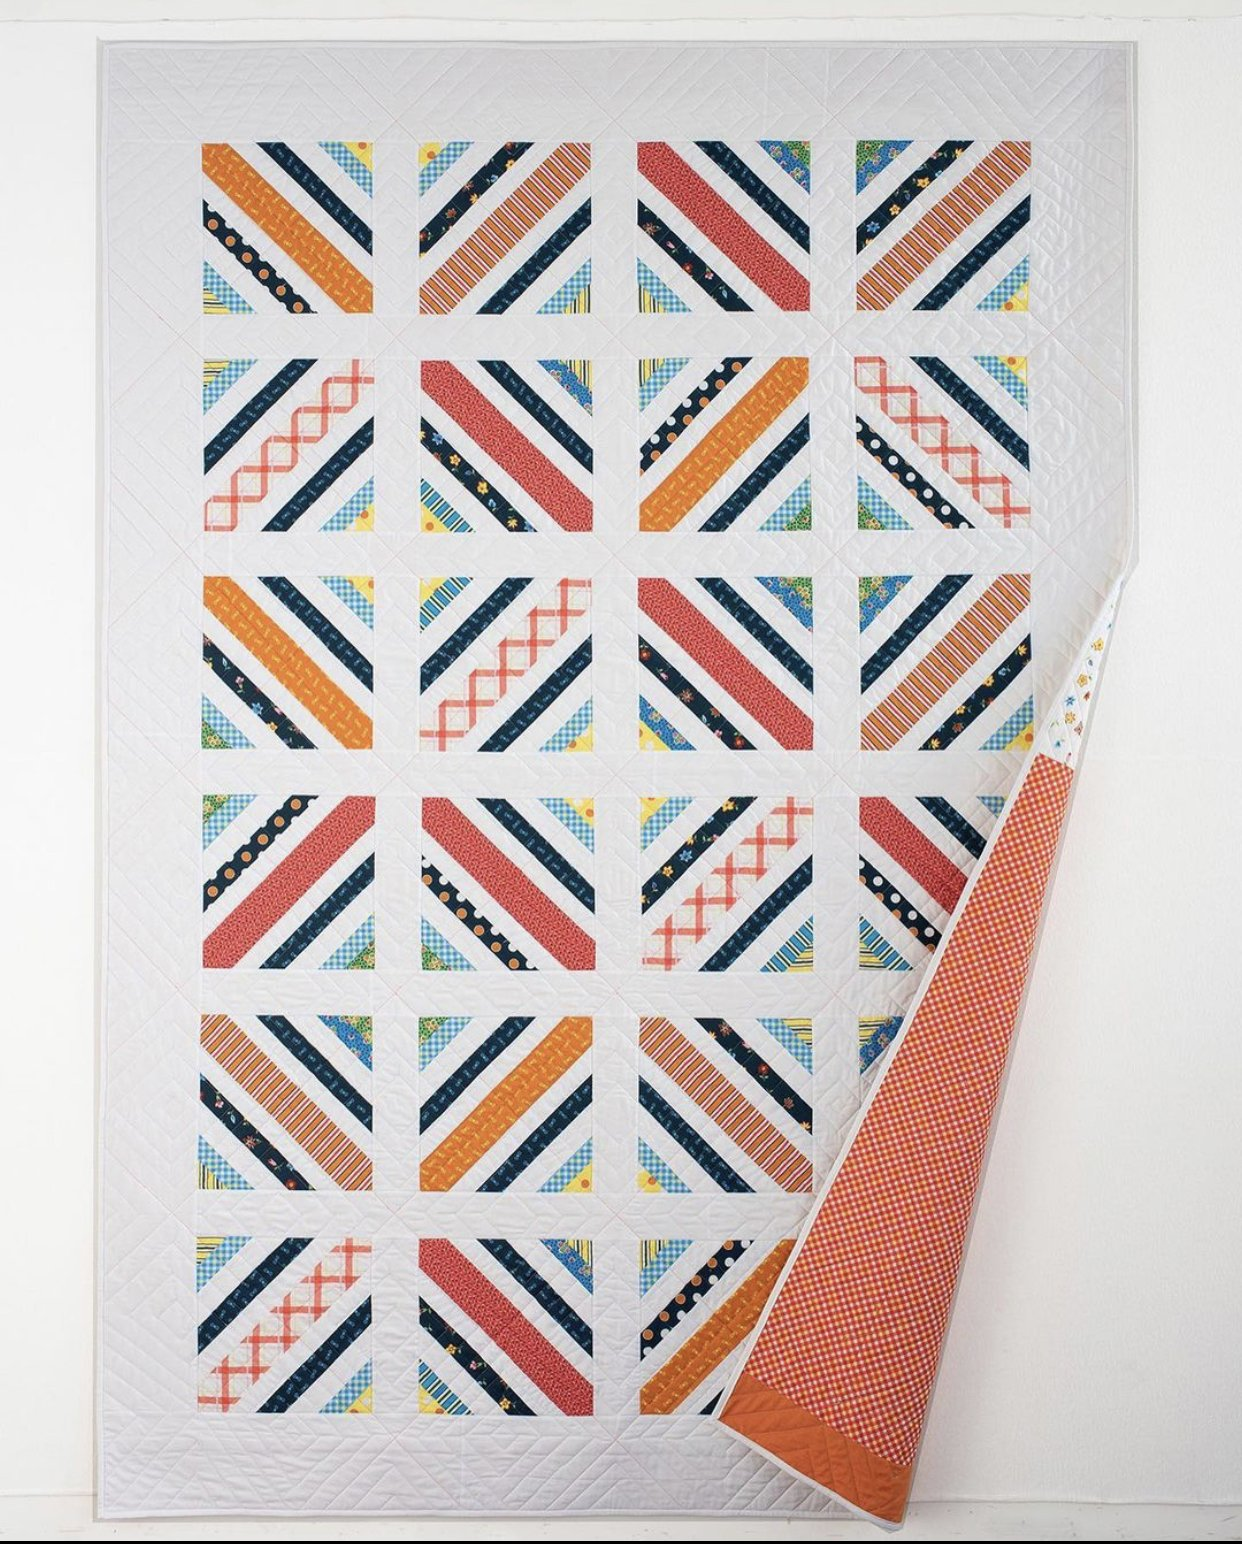 BTLQKFT Between the Lines Quilt Kit by Denyse Schmidt for Windham Fabrics